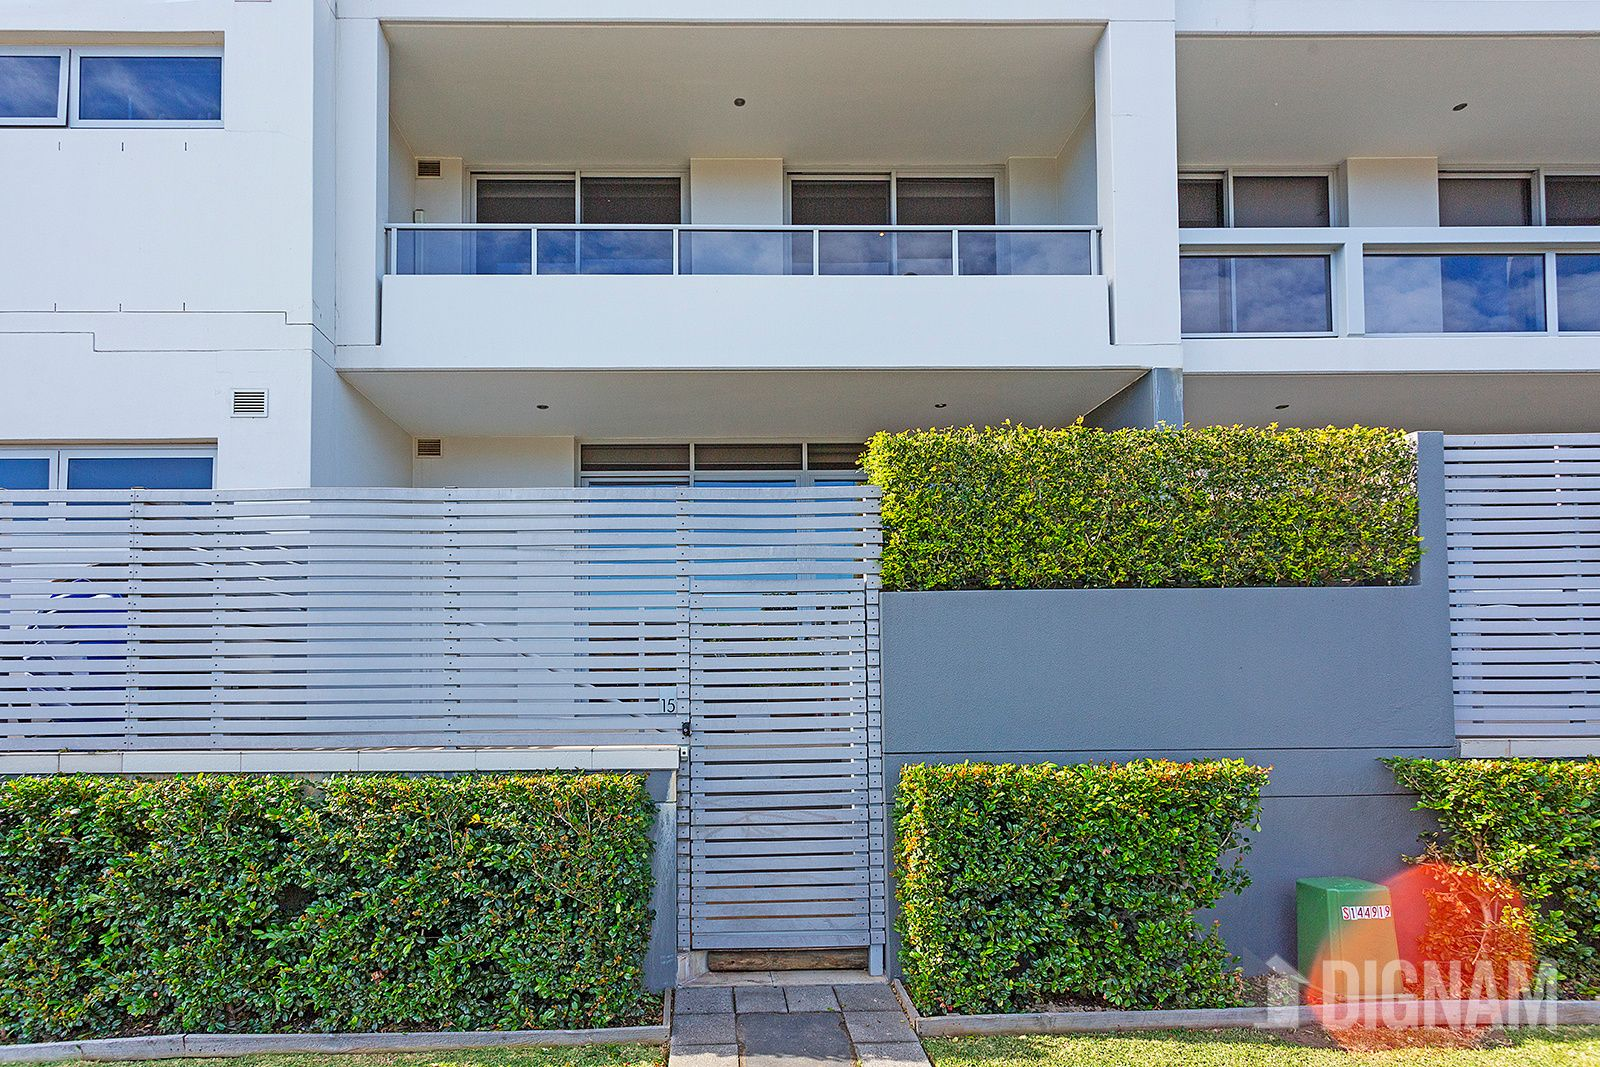 15/2-12 Young Street, Wollongong NSW 2500